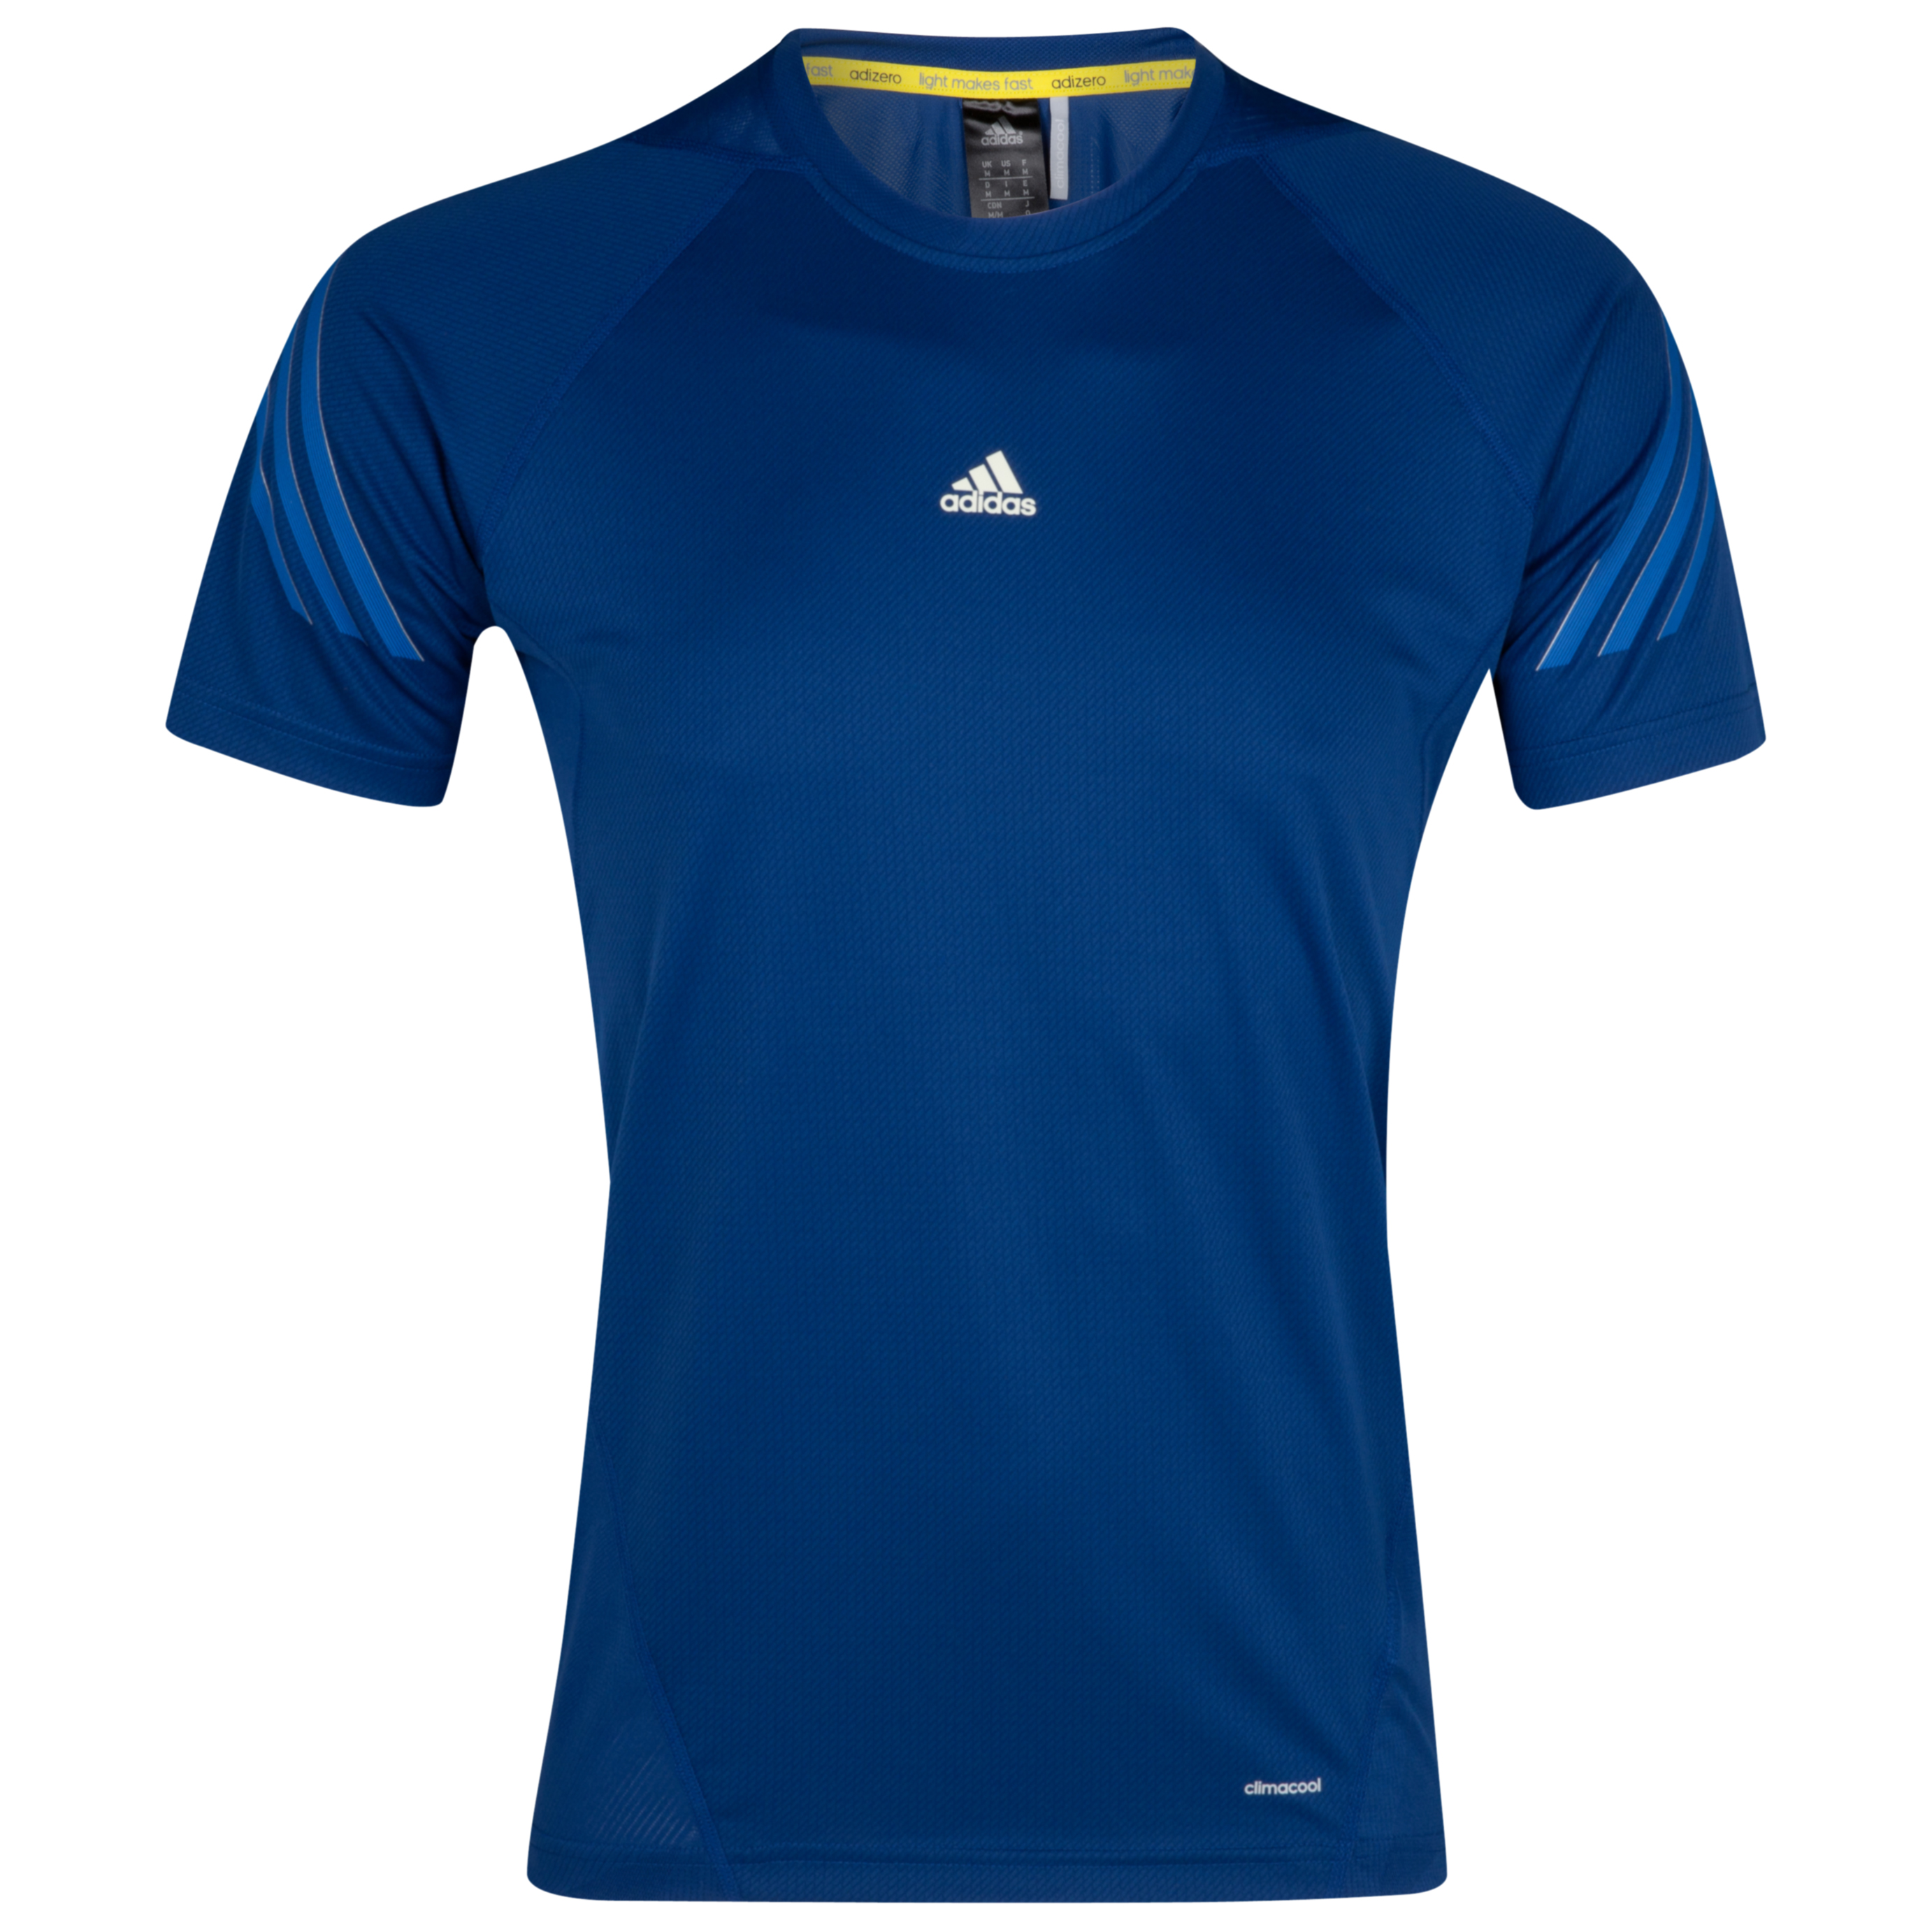 adidas adiZero Training Tee - Dark Blue